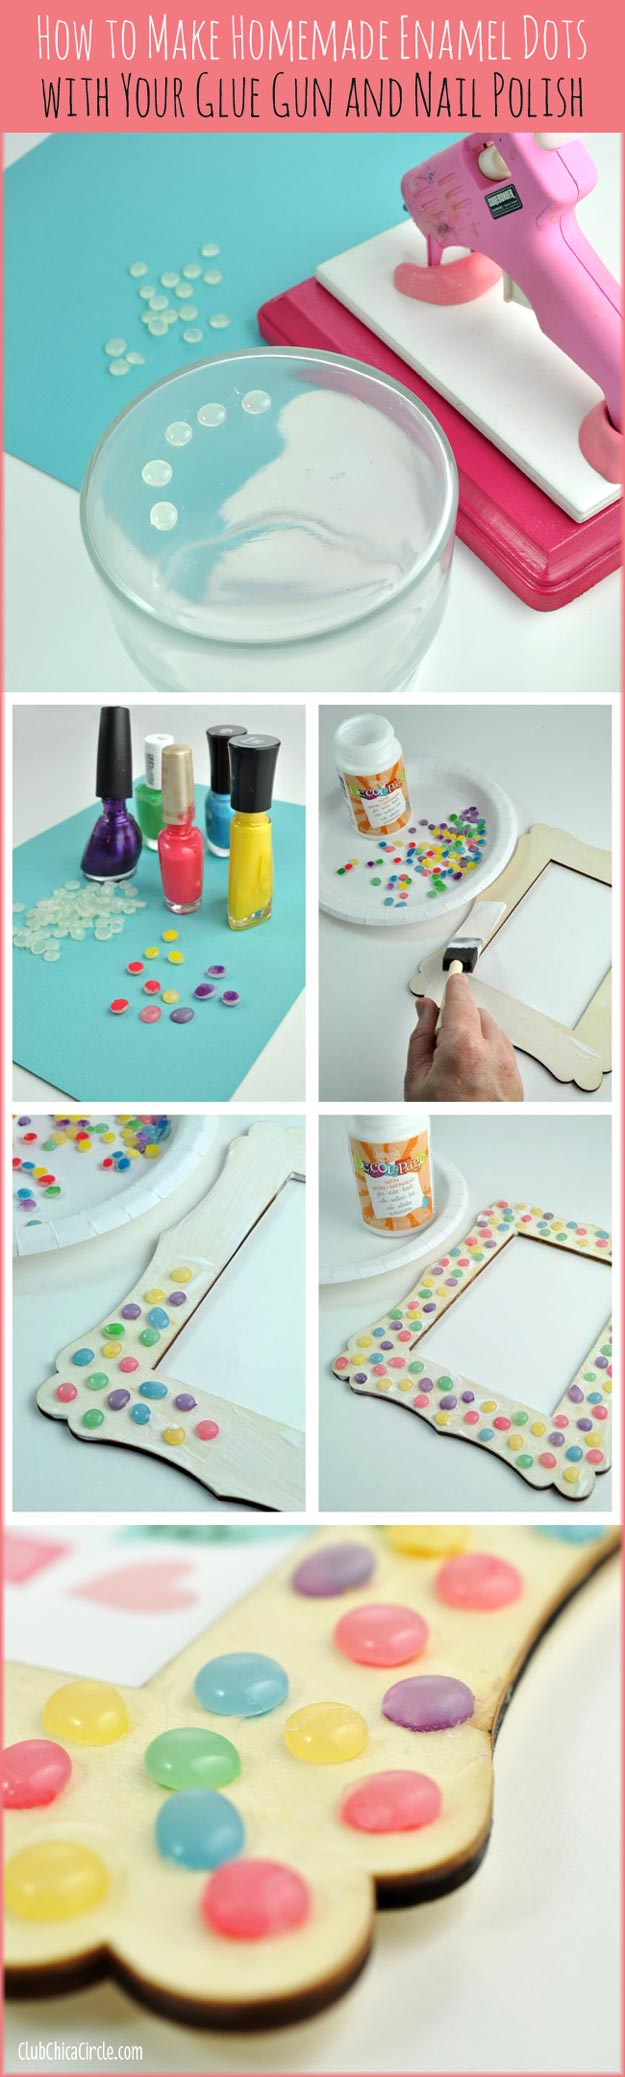 31 Incredibly Cool DIY Crafts Using Nail Polish DIY Projects For Teens